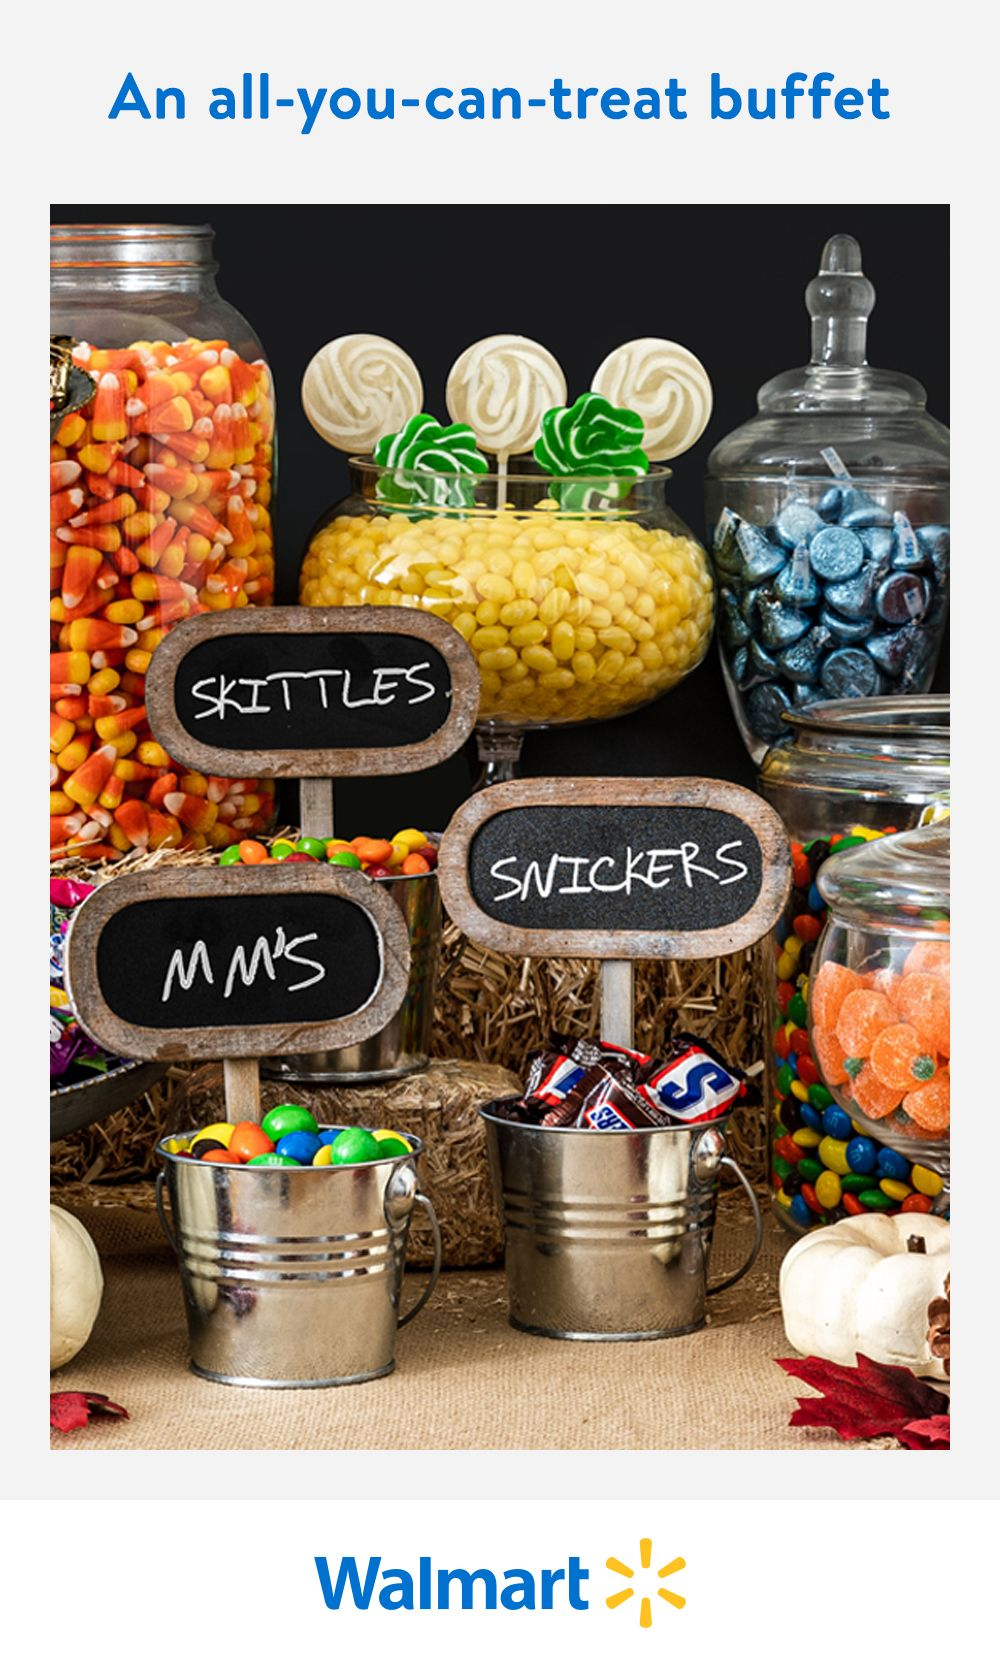 Make sure everyone ends up with their fave treat this Halloween with a candy buffet table! You'll find everyday low prices on serving stands, candy containers, and all your fave sweet treats at Walmart. Don't forget the finishing touches with pumpkins, ghosts, and other classic Halloween decor.